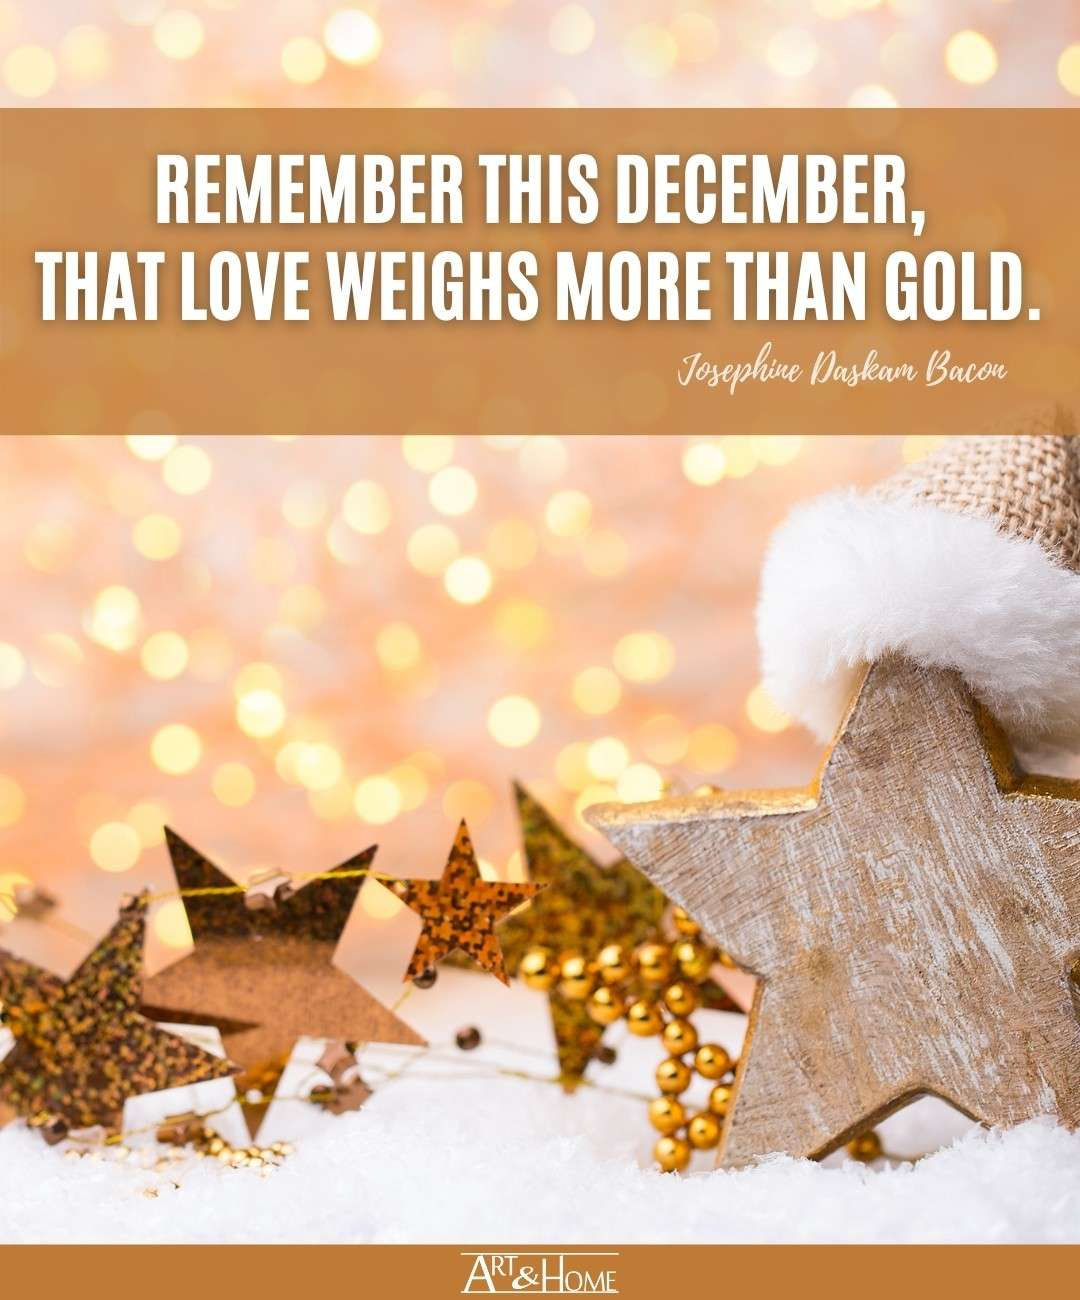 love weighs more than gold Christmas quote